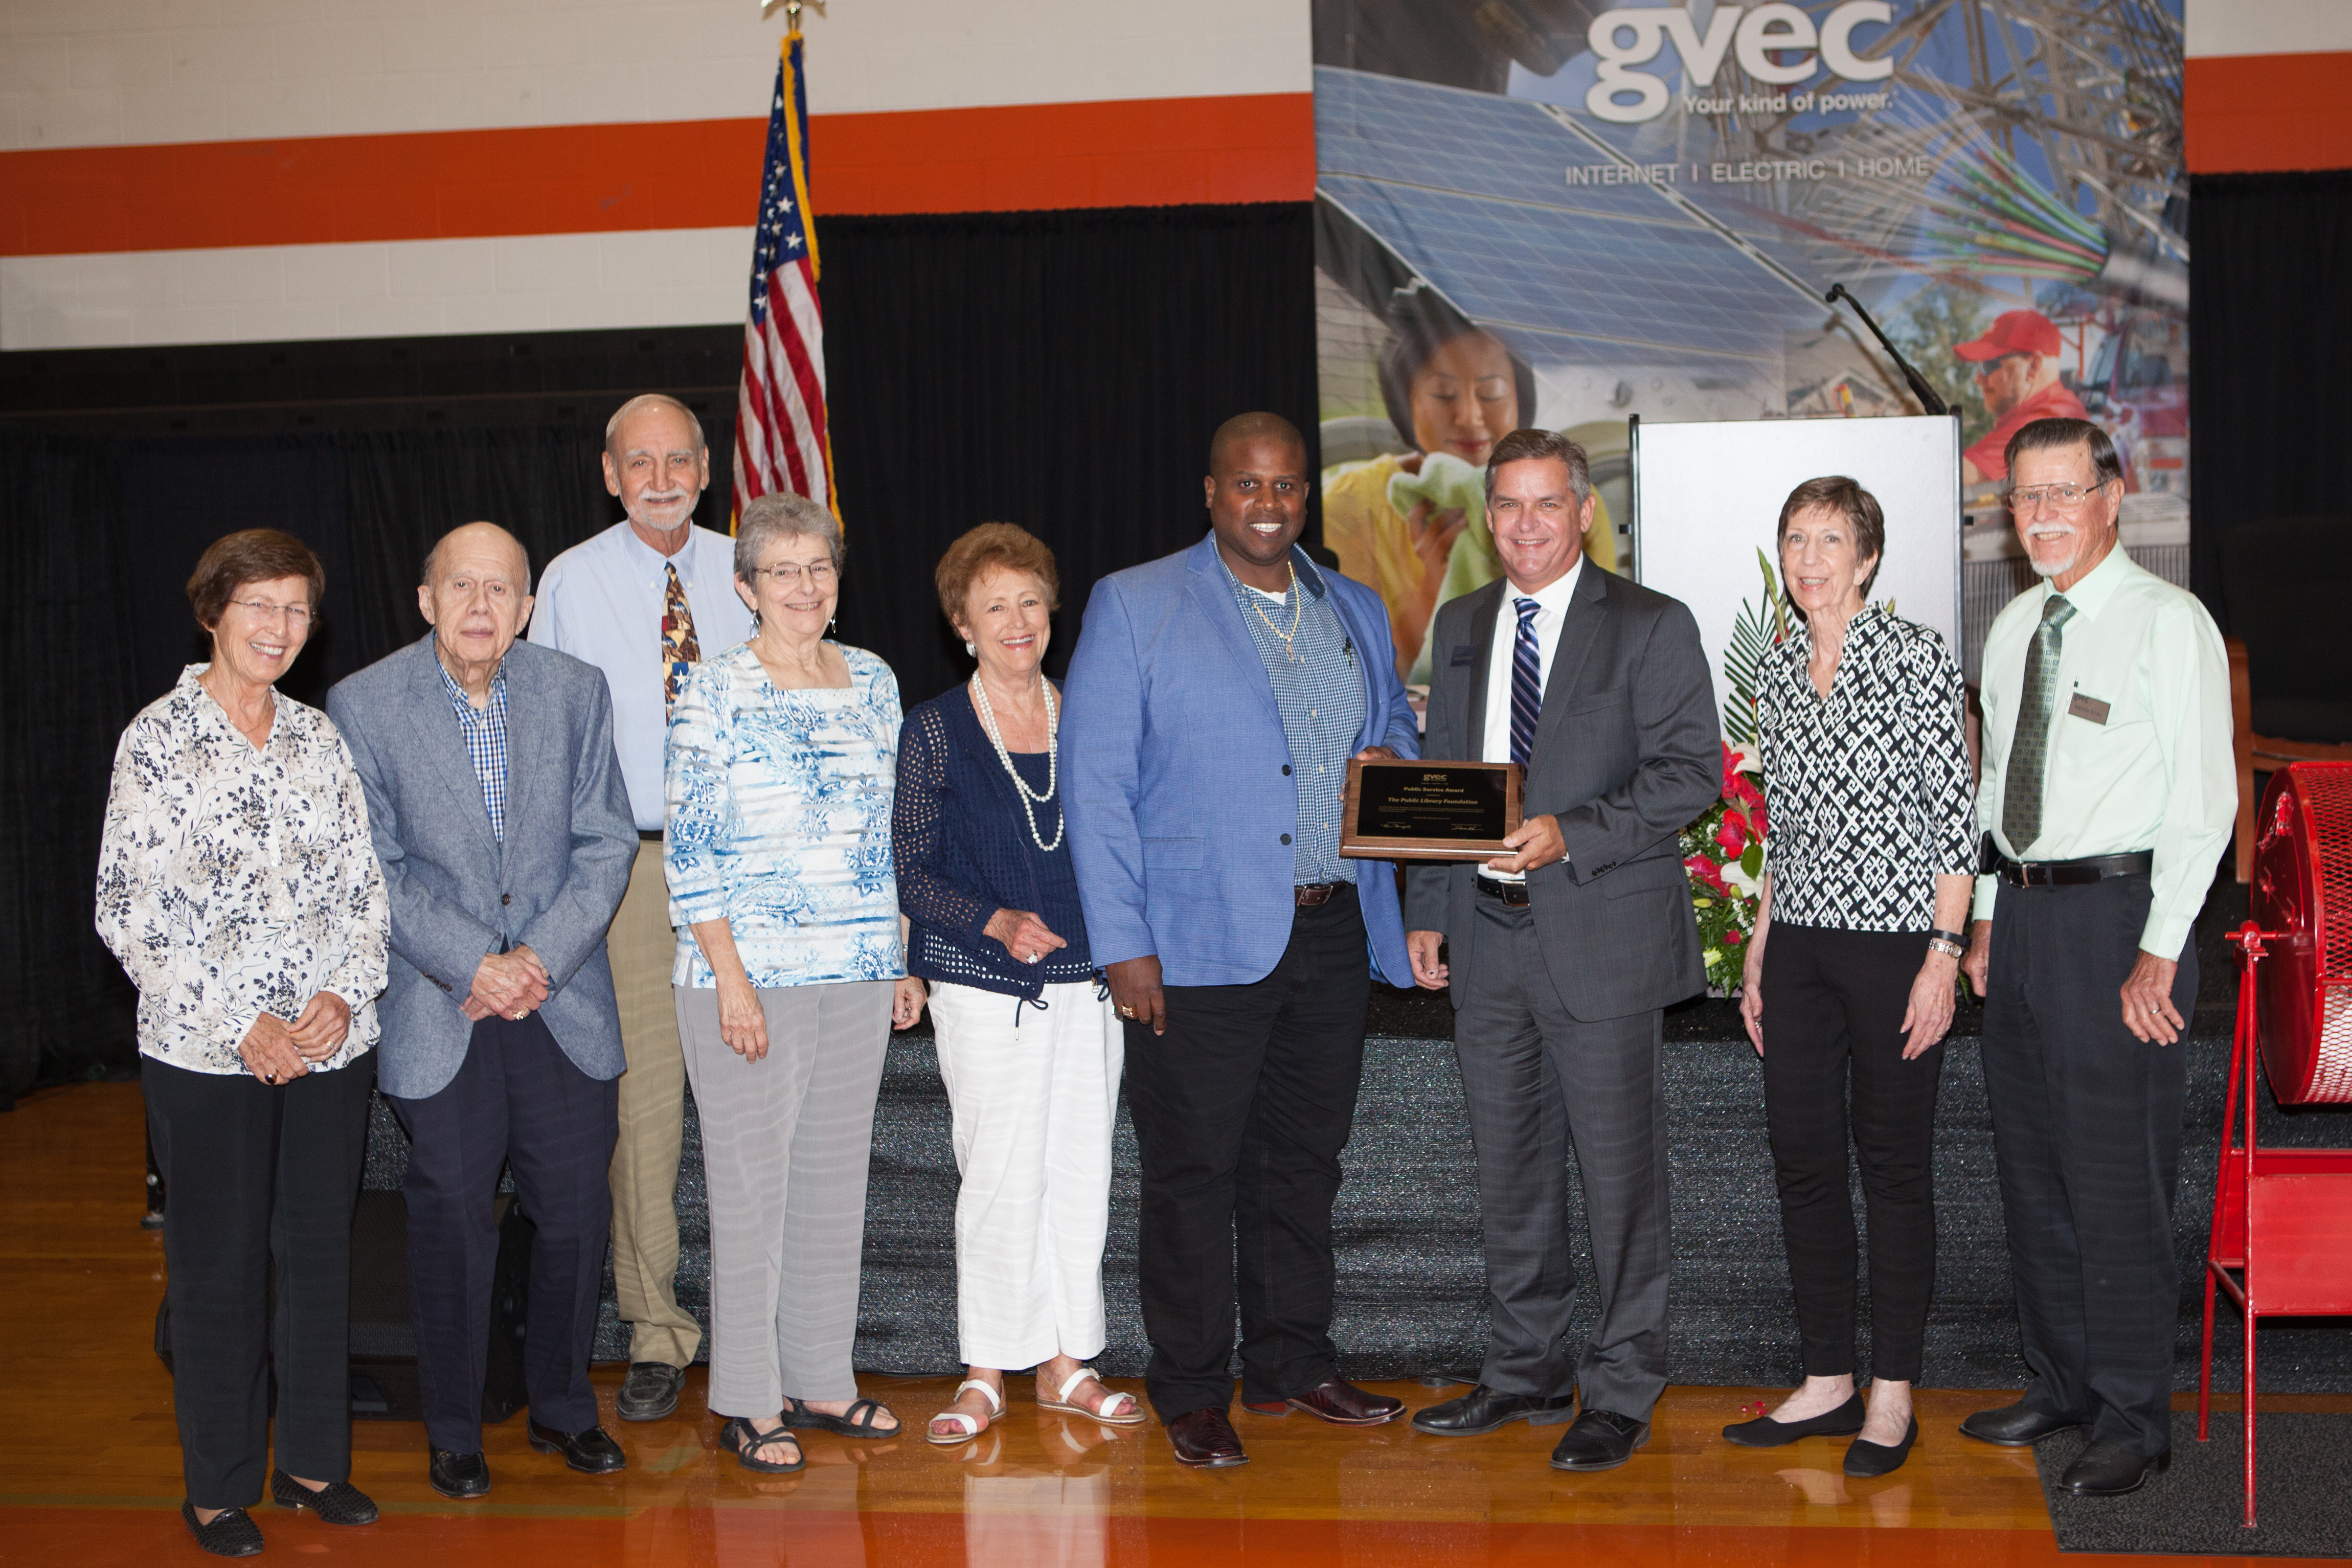 The Public Library Foundation Seguin is Presented with GVEC Public Service Award 2017